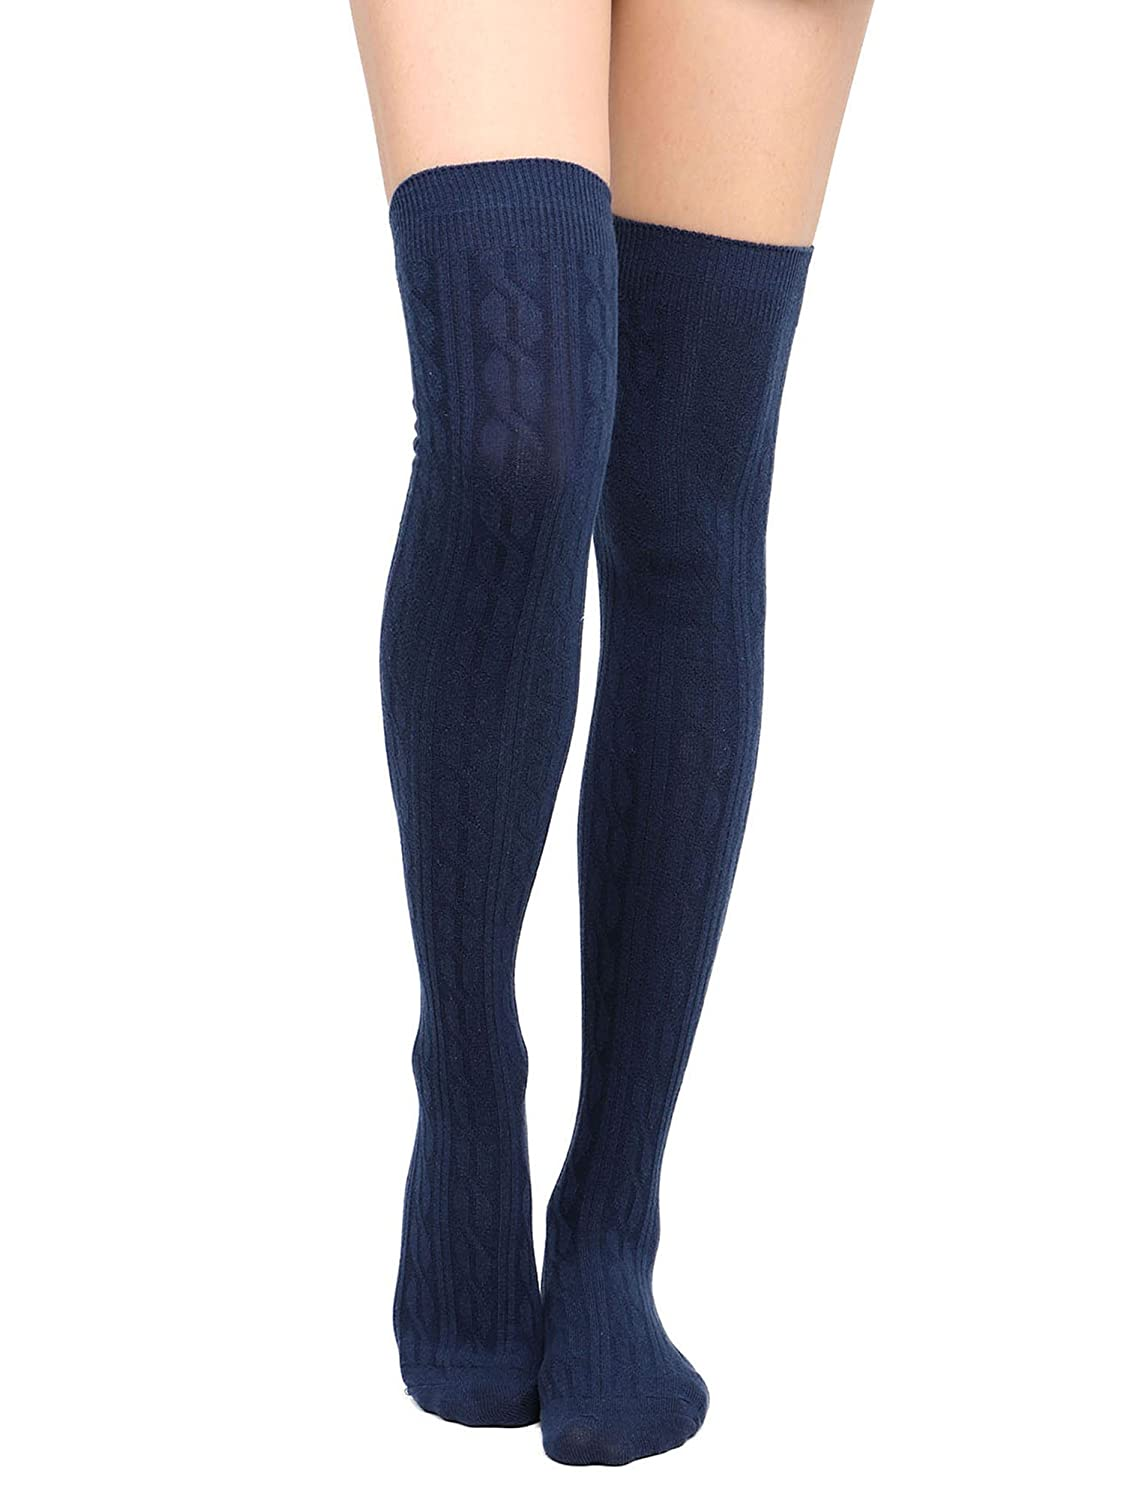 Women's Cable Knit Knee-High Winter Socks – 1-3 Packs Black Simplicity MC171014300514-CA